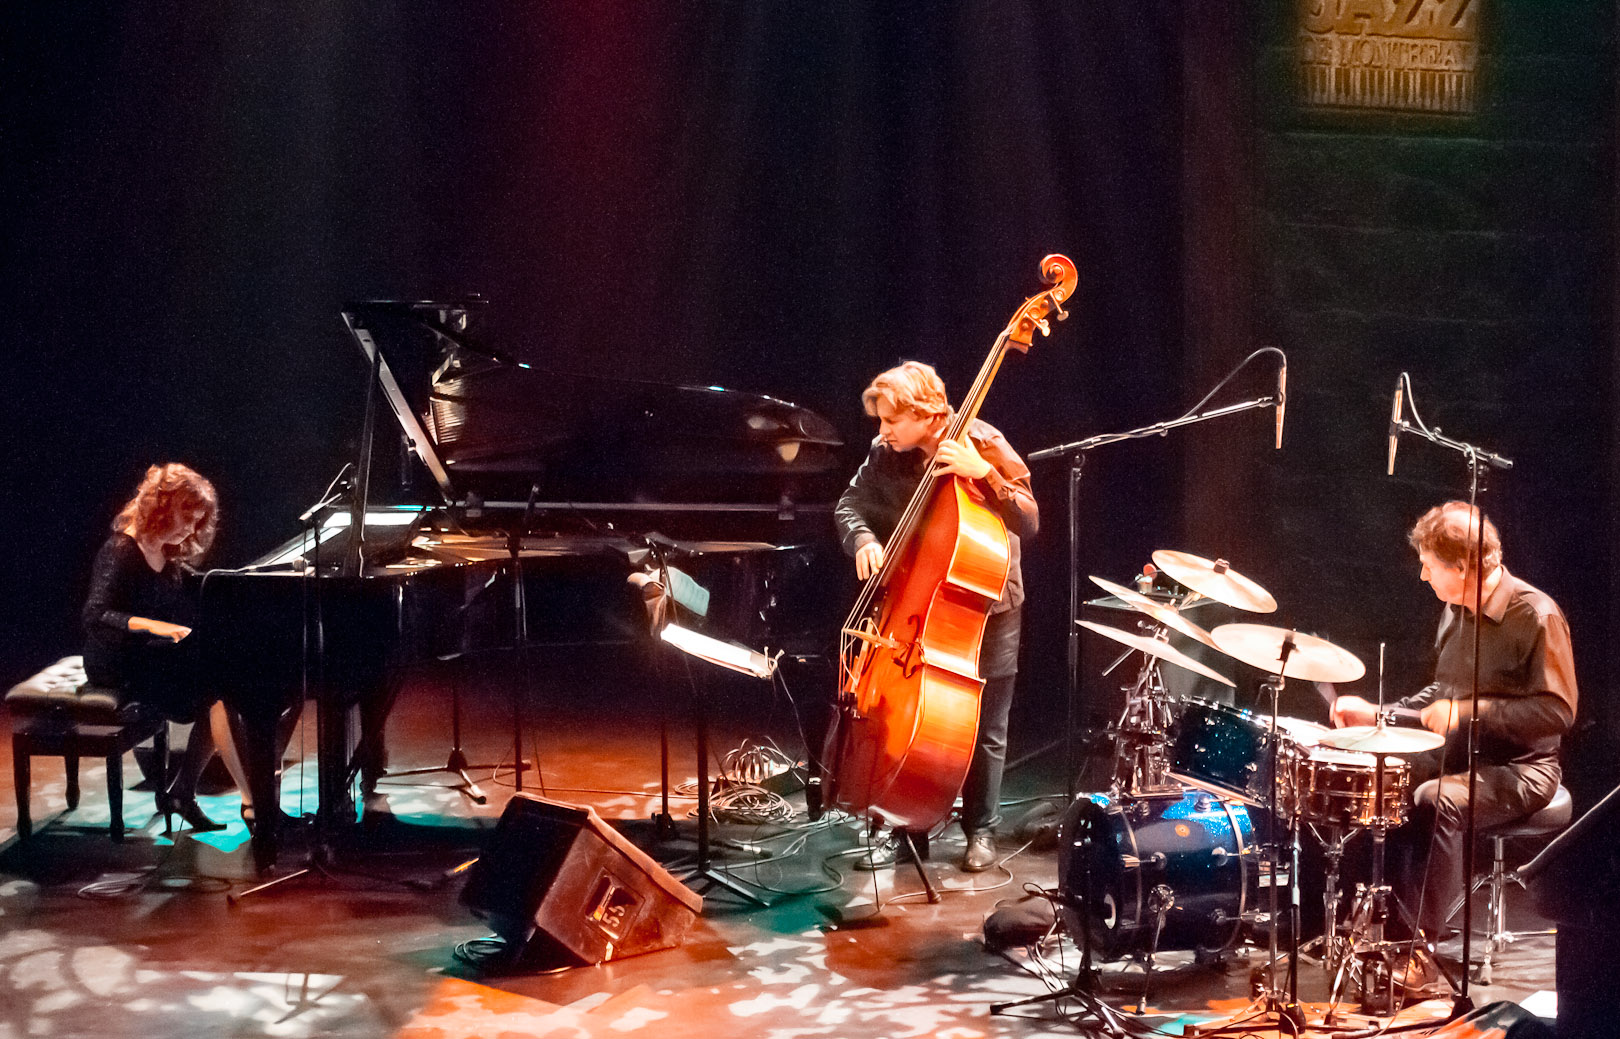 Lorraine Desmarais, Frederic Alarie and Camille Belisle at the Montreal International Jazz Festival 2012